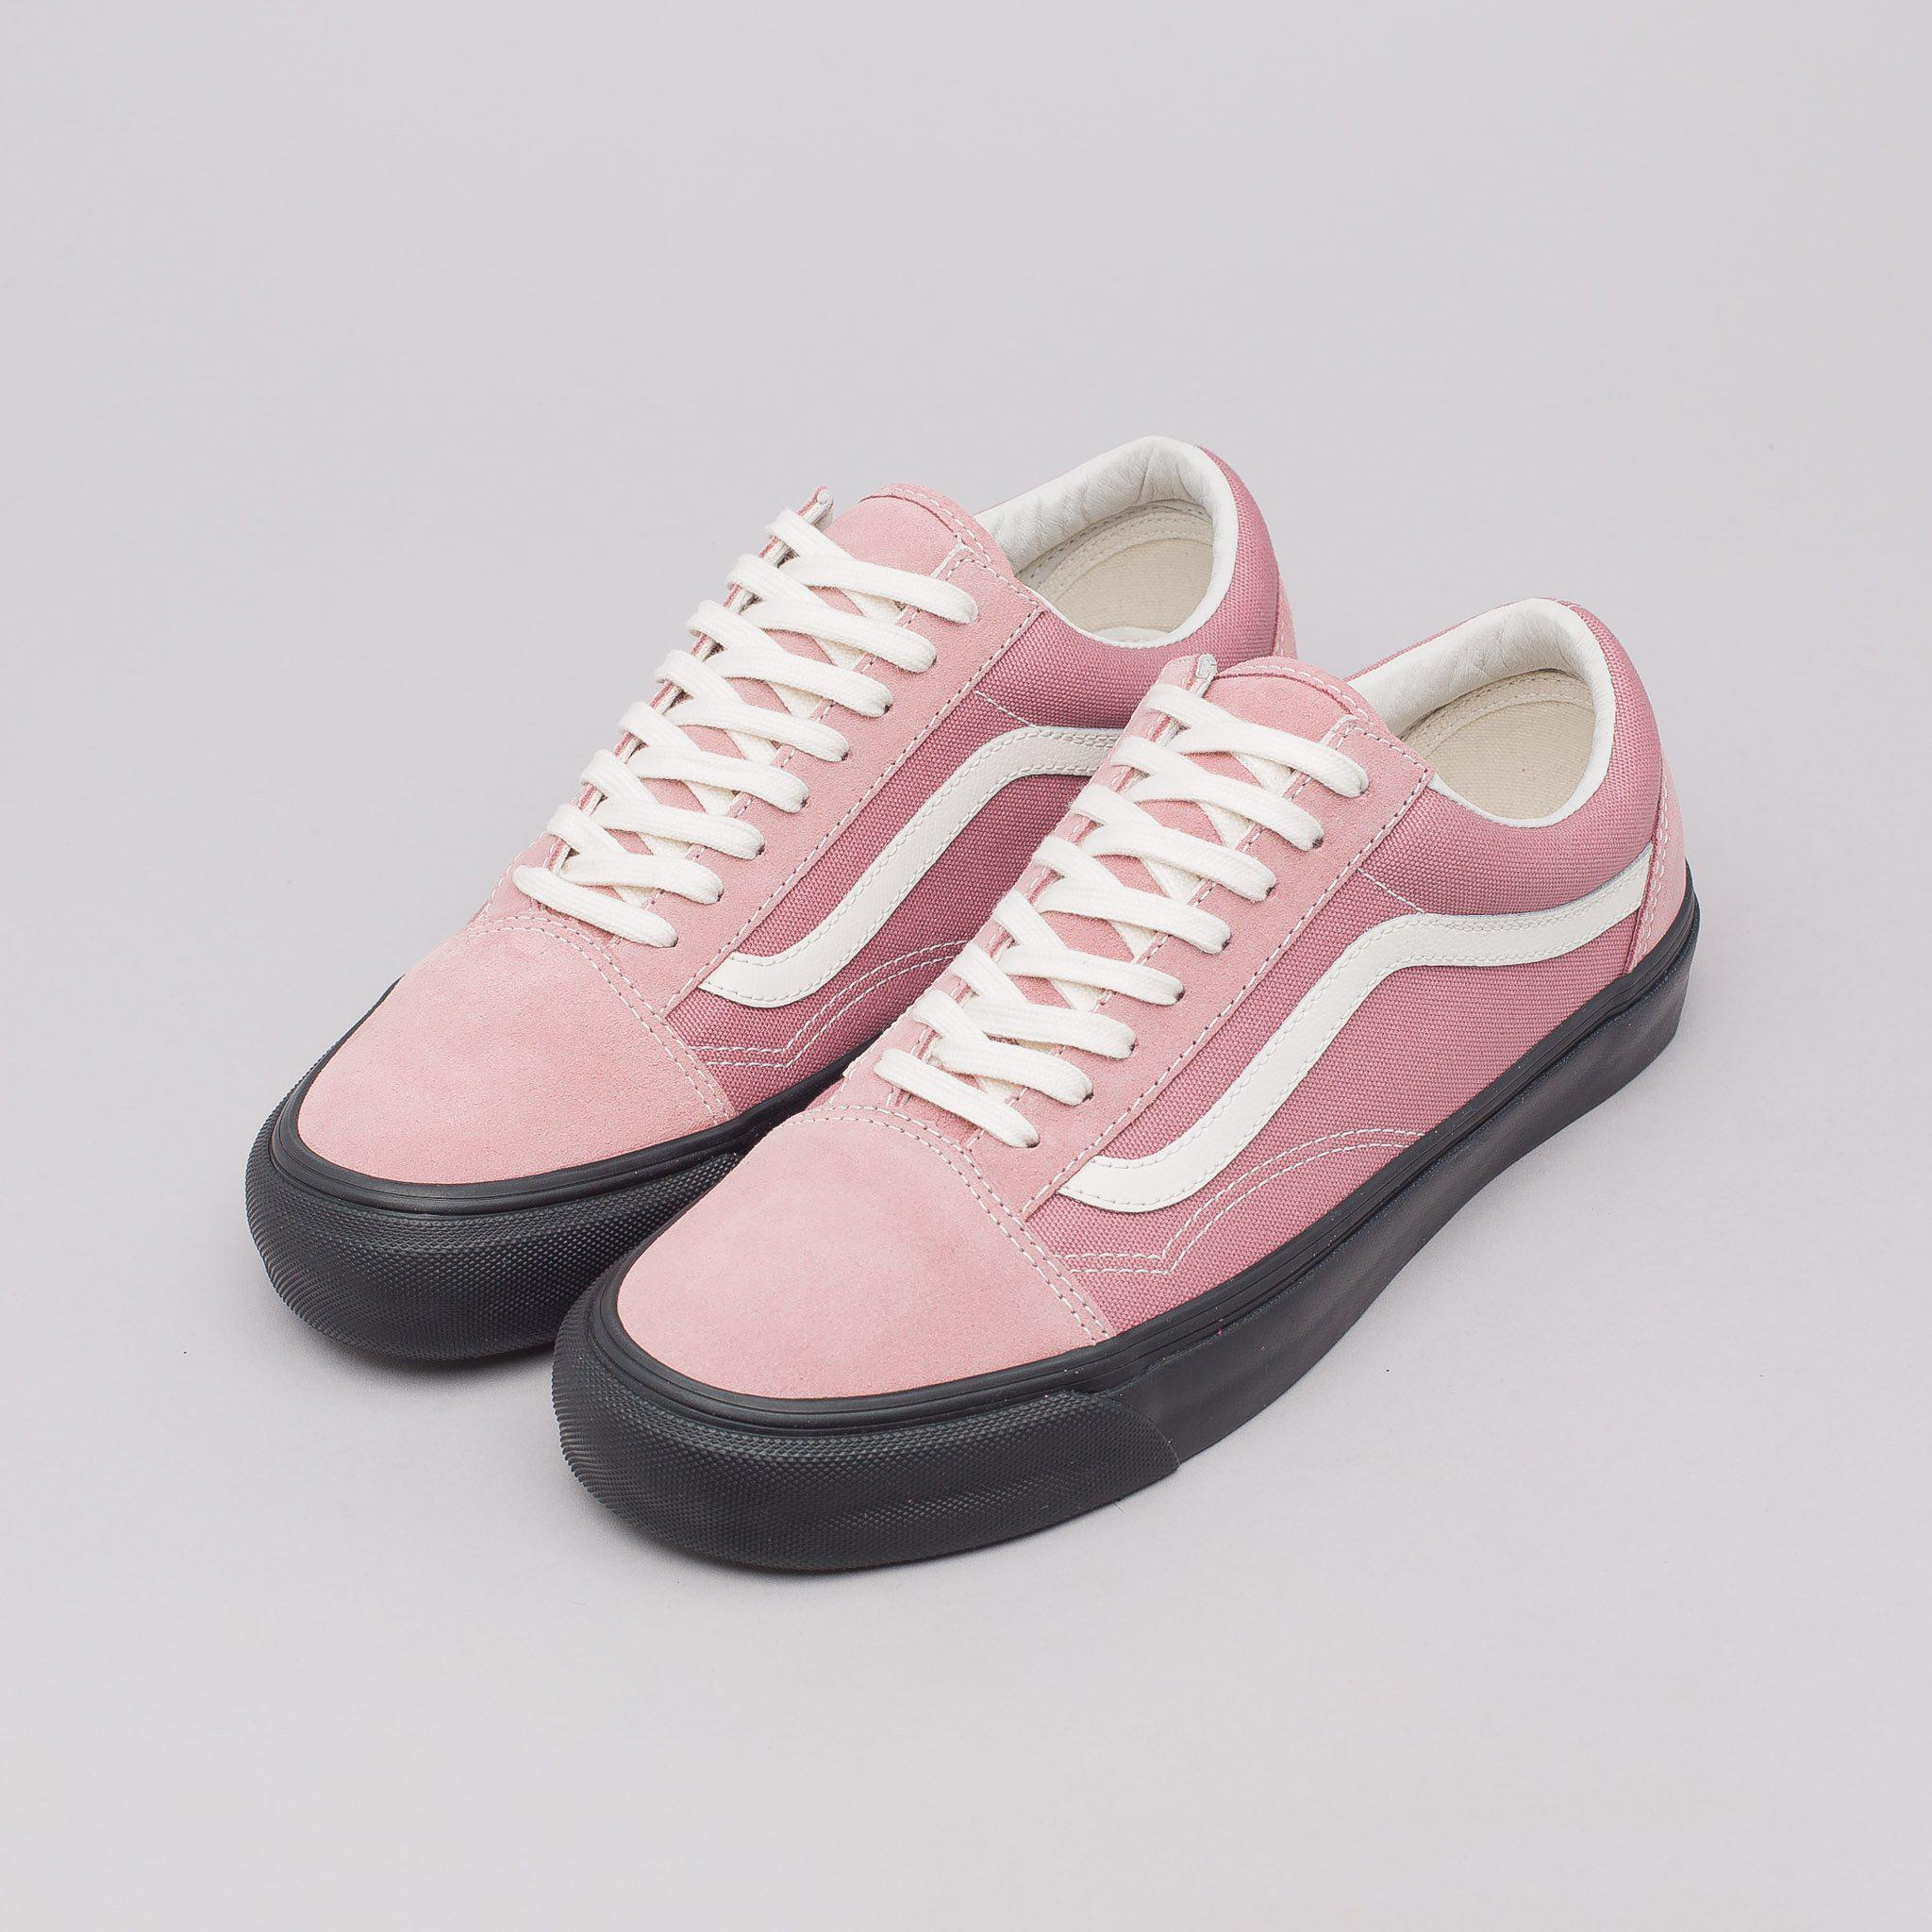 0c3df3727ee0 Vans Og Old Skool Lx In Ash Rose in Pink for Men - Lyst